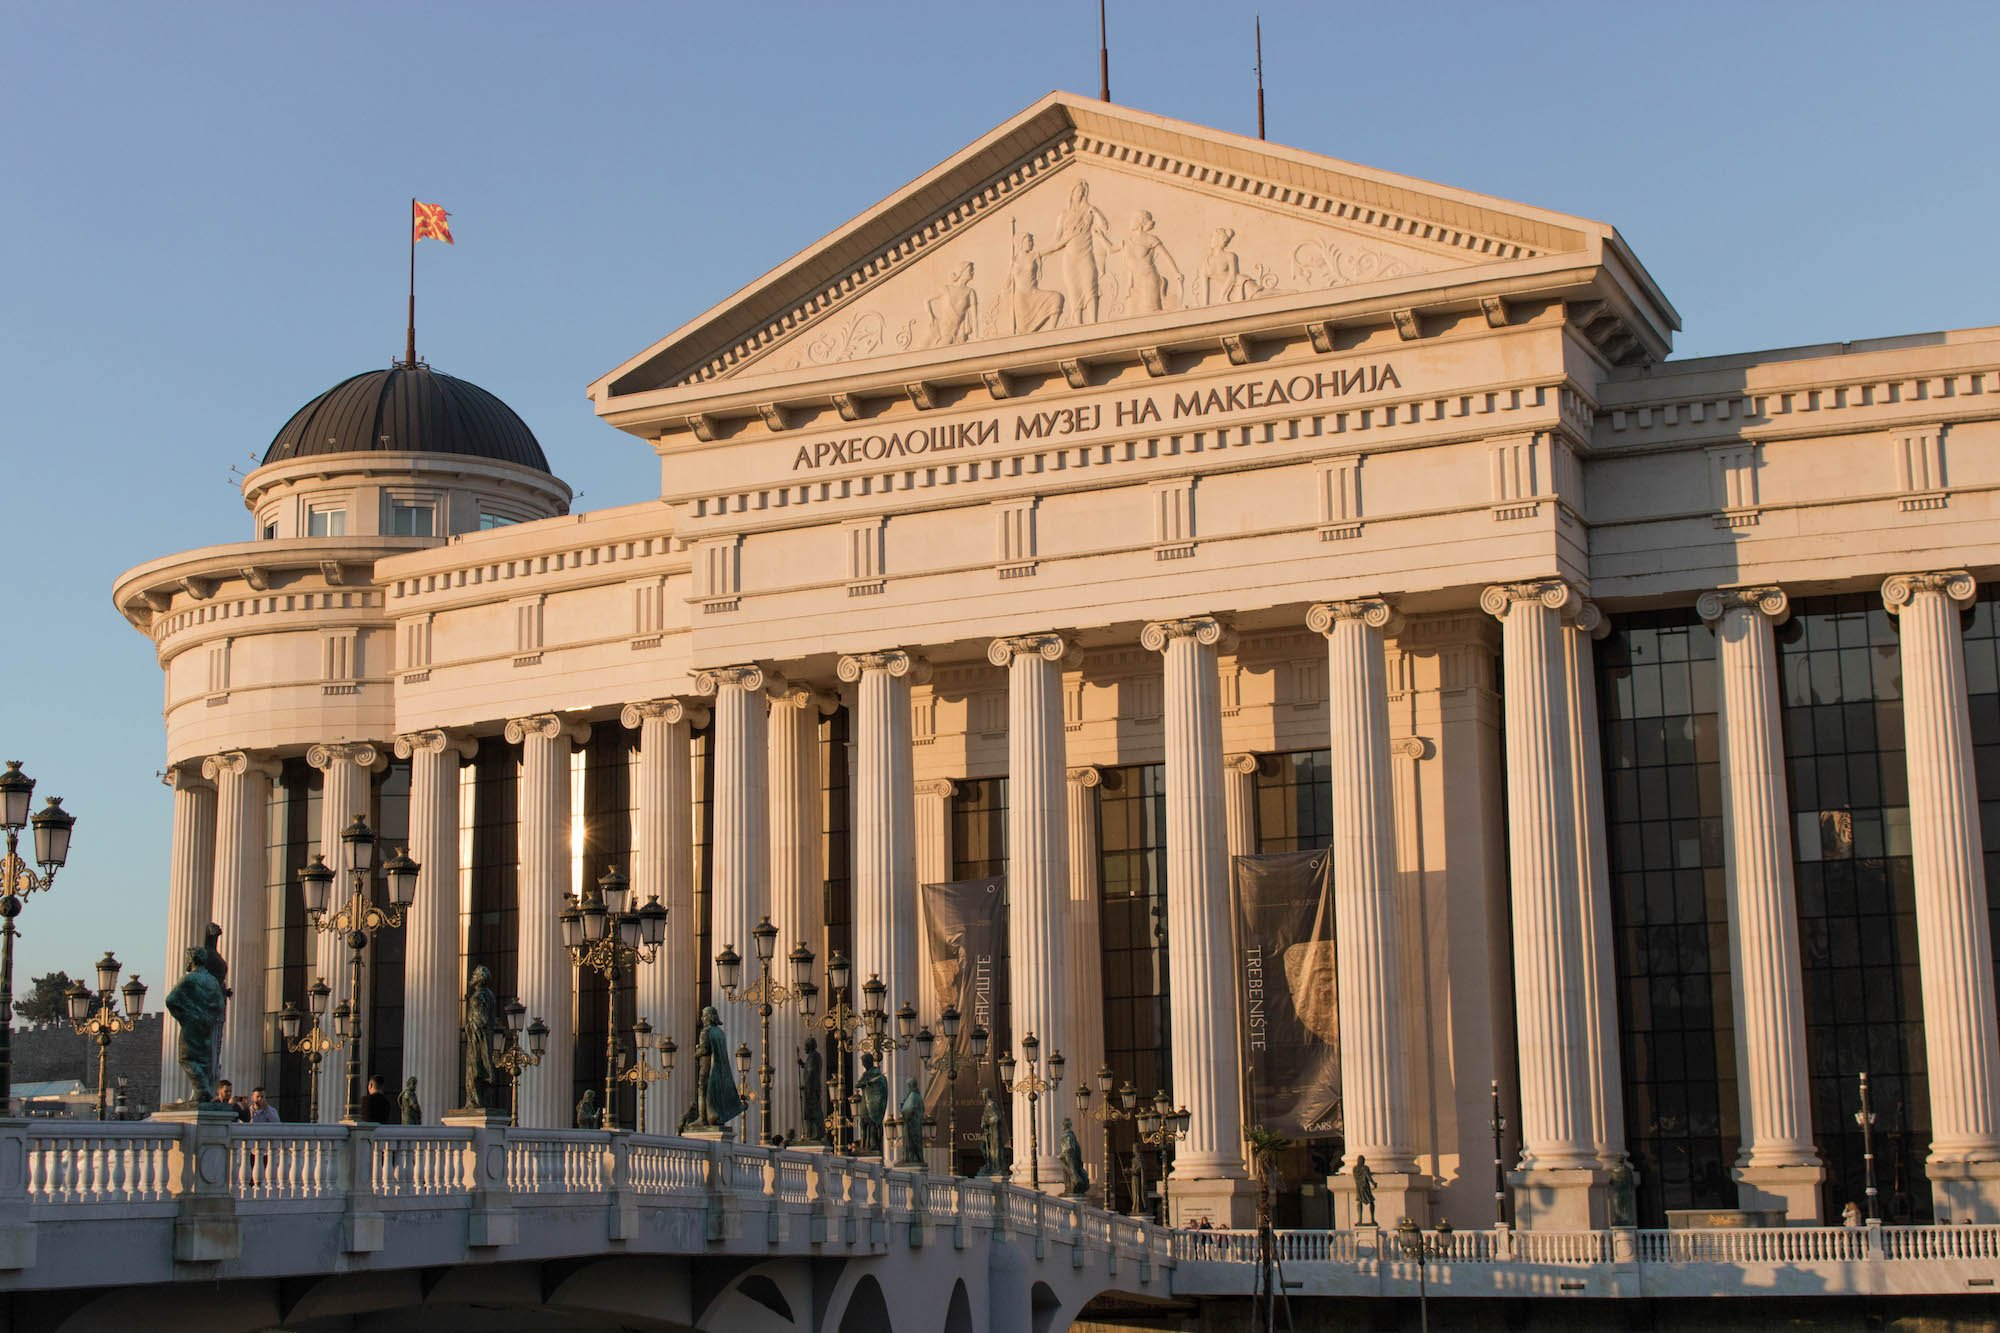 The Museum of Archaeology, an example of Skopje 2014's Neoclassicism. Image: Liza Premiyak